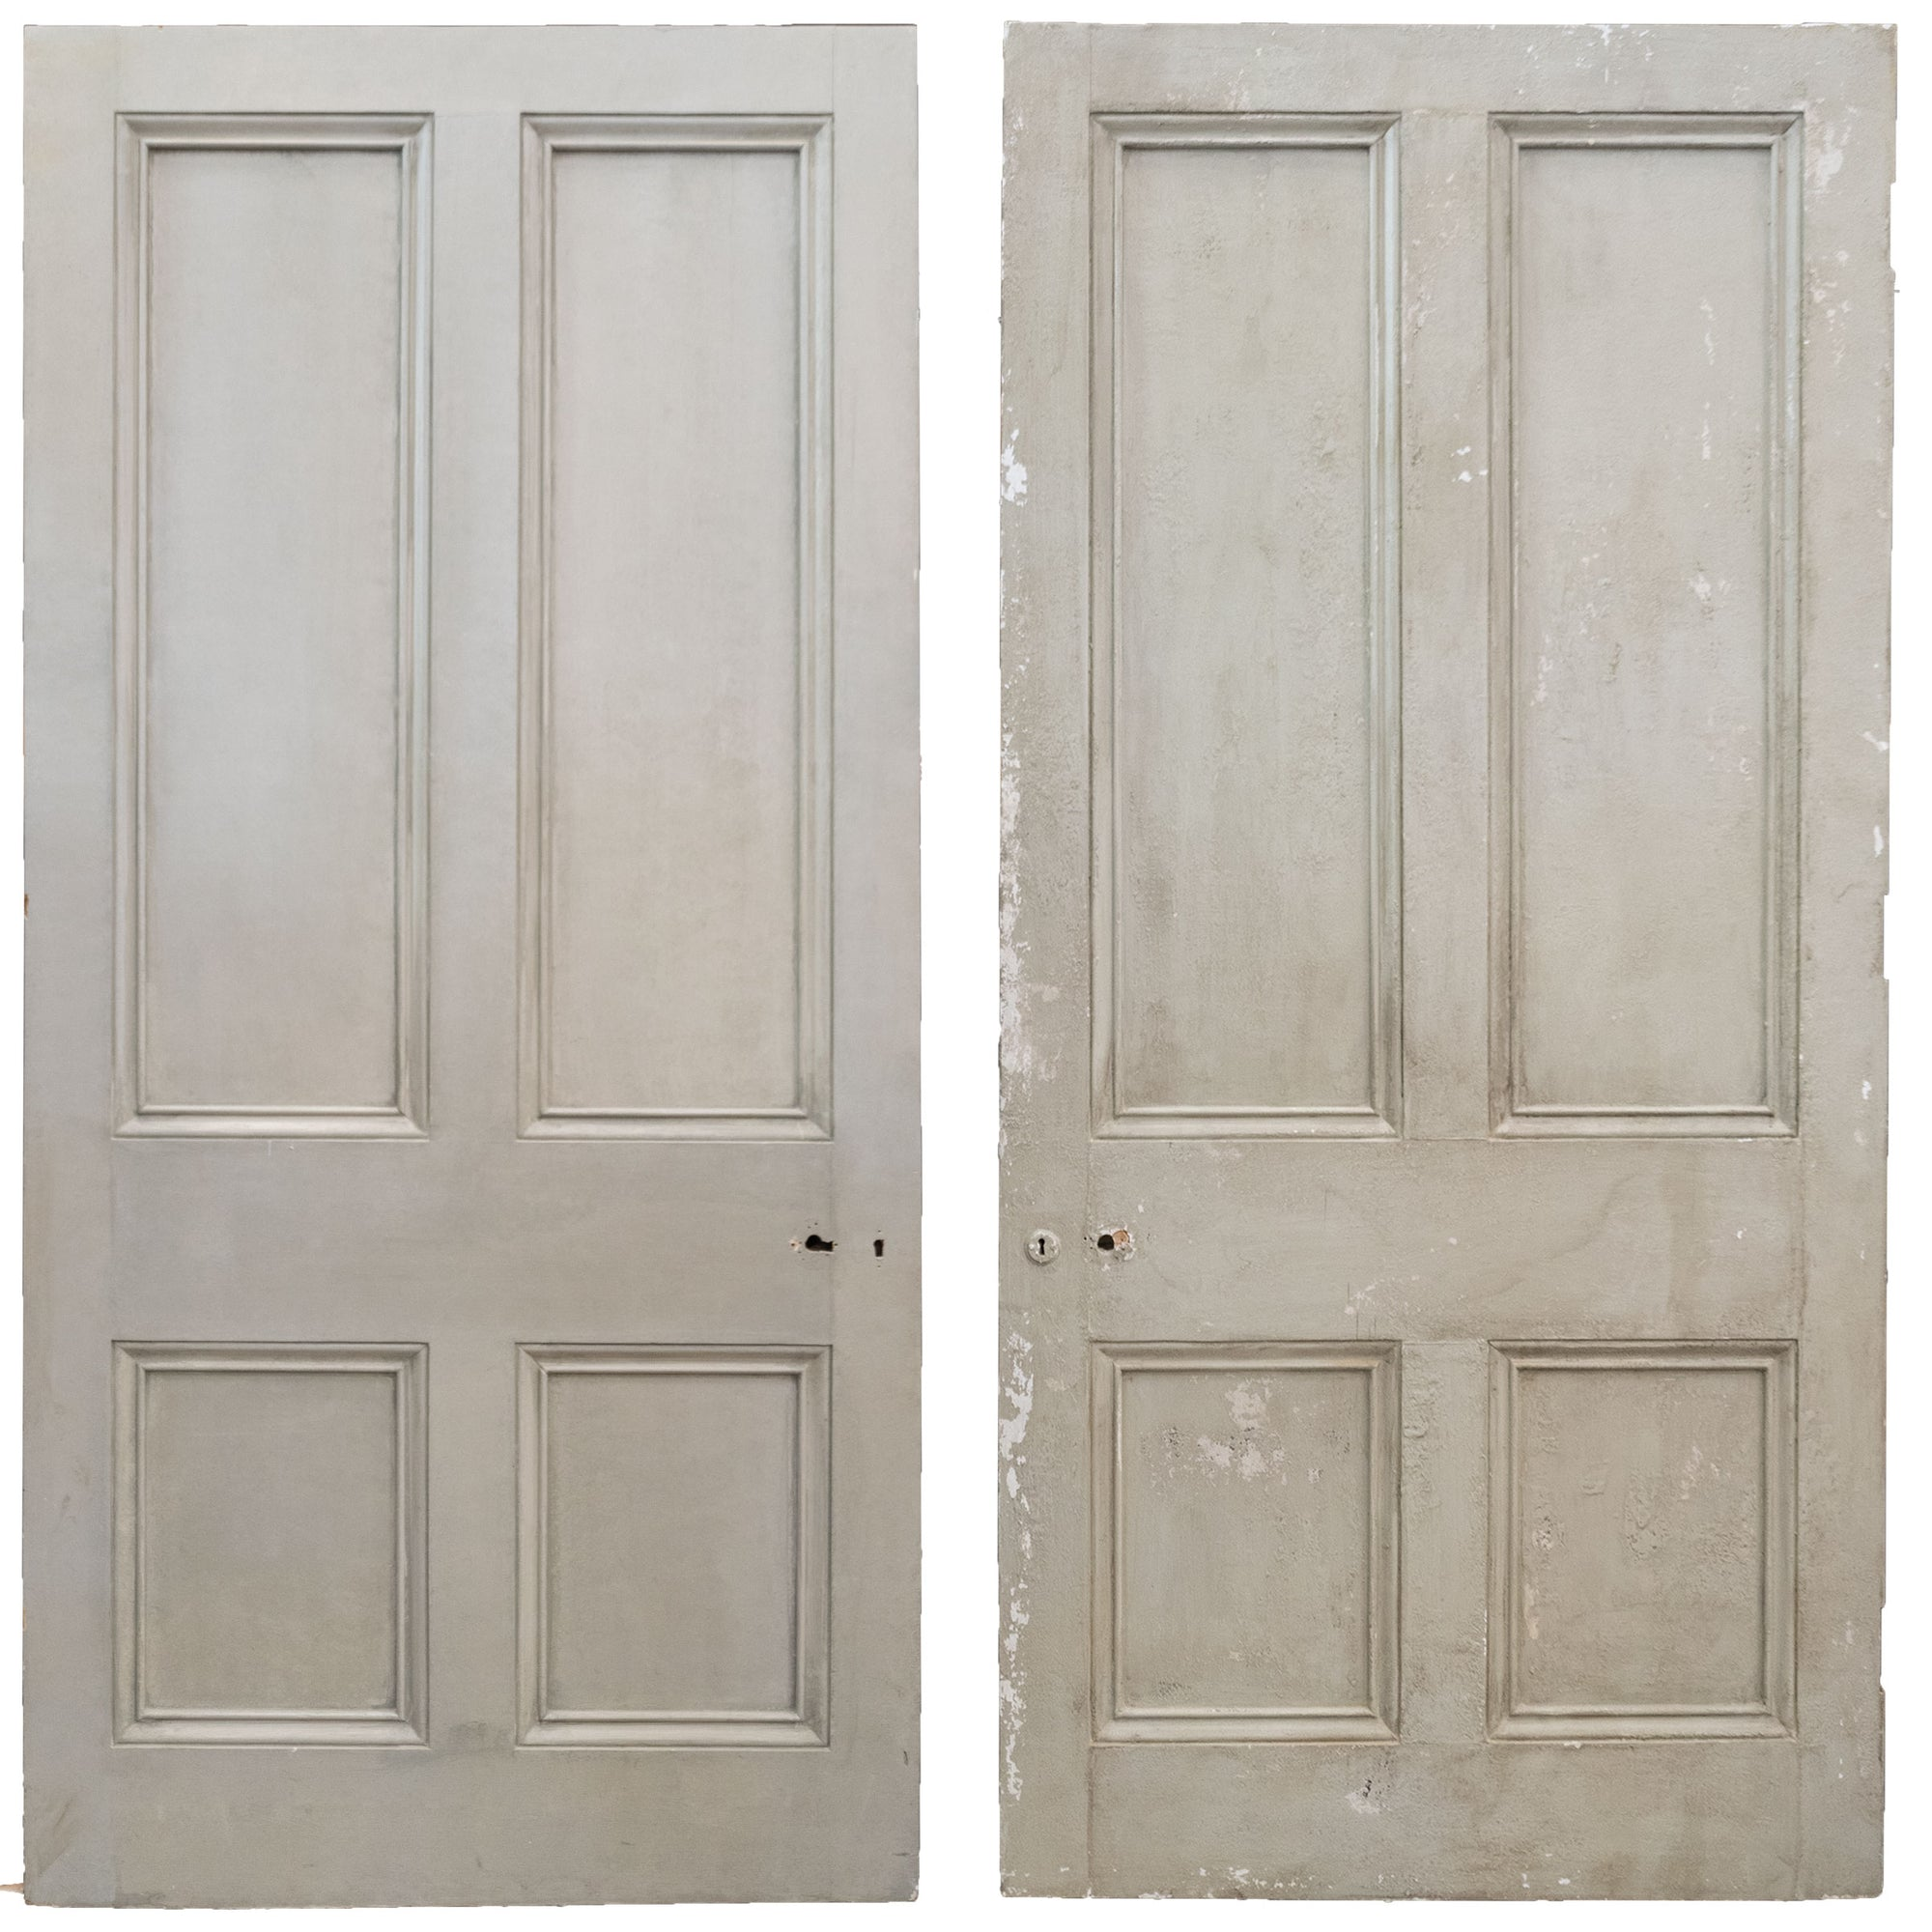 Large Antique Victorian 4 Panel Door - 223.5cm x 105.5cm | The Architectural Forum